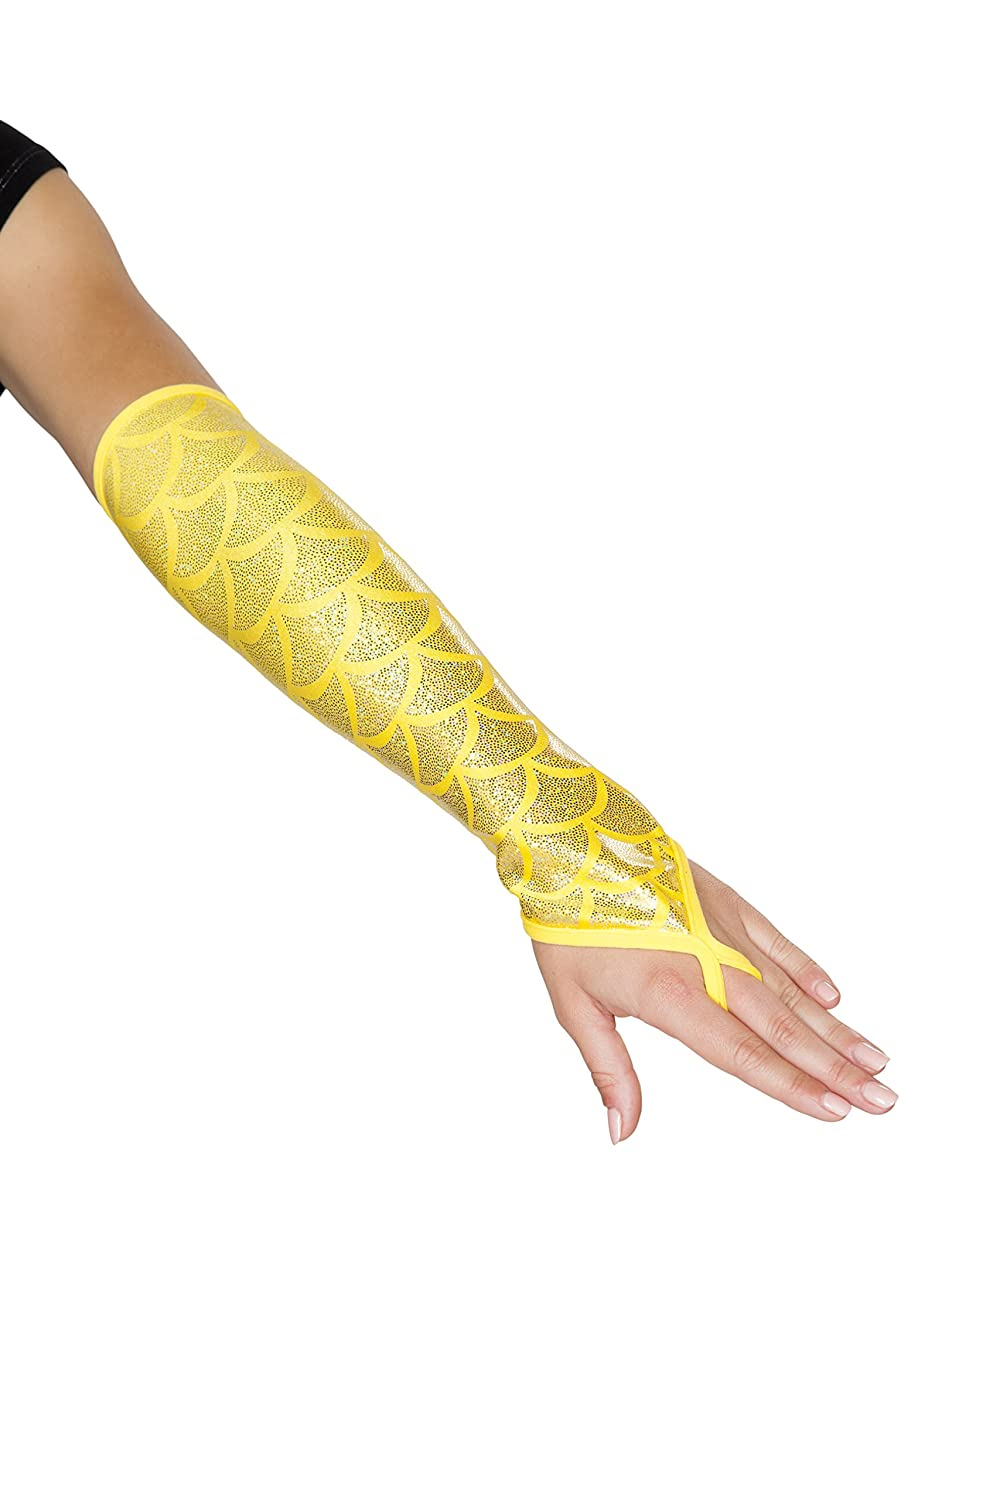 Sexy Women's Shimmery Yellow Mermaid Fingerless Elbow Length Gloves - DeluxeAdultCostumes.com